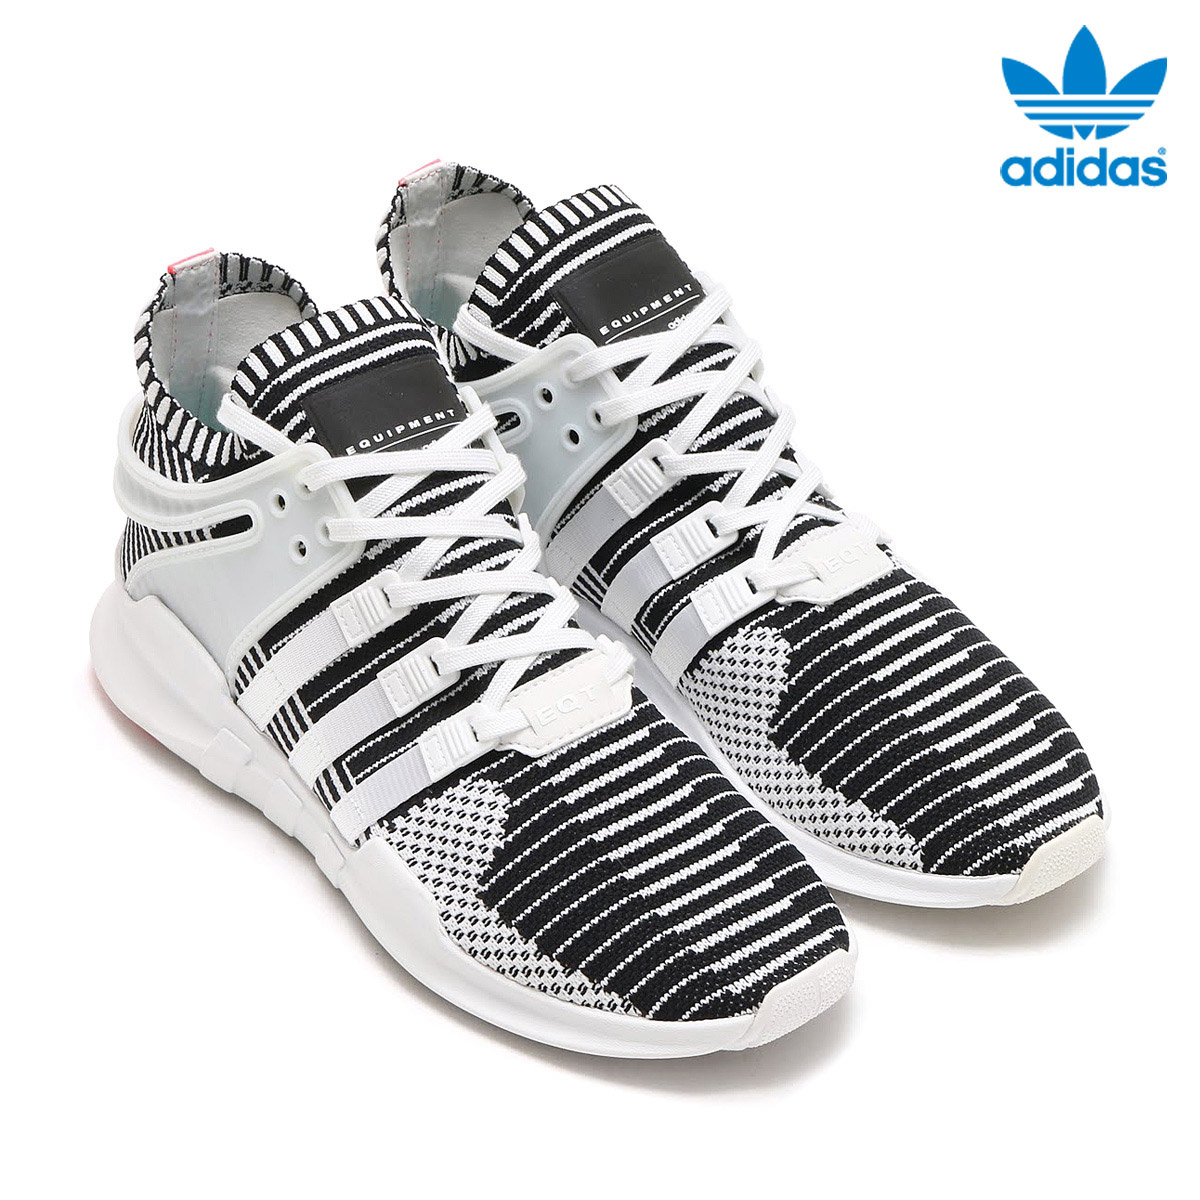 05cf56d67201 I post three stripe to connect it with the EVA mid sole with cushion  characteristics to the upper of the elastic adidas prime knit